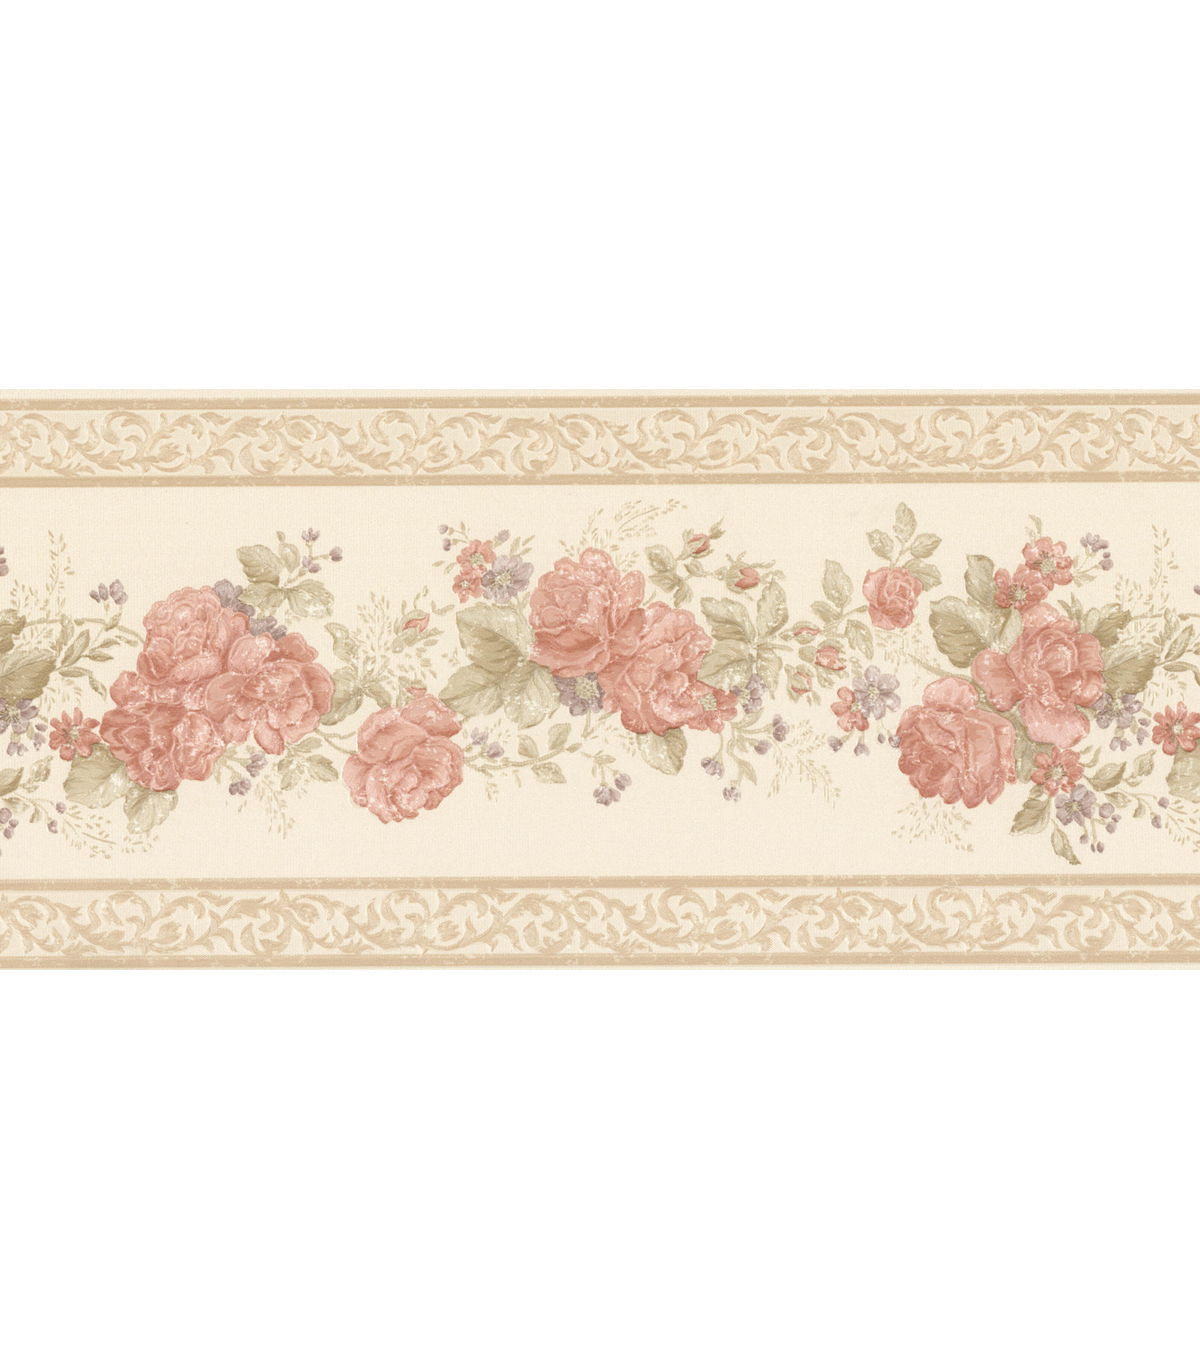 Tiff Peach Satin Floral Wallpaper Border Sample